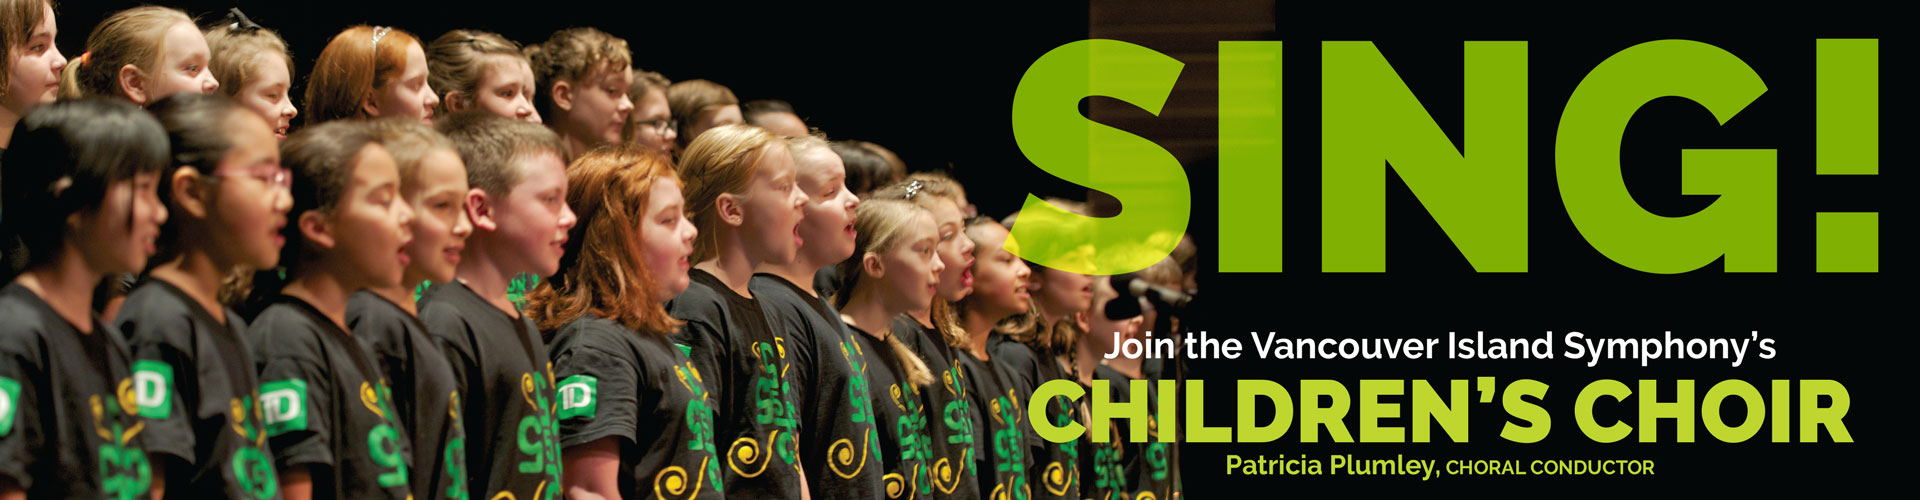 Vancouver Island Children's Choir